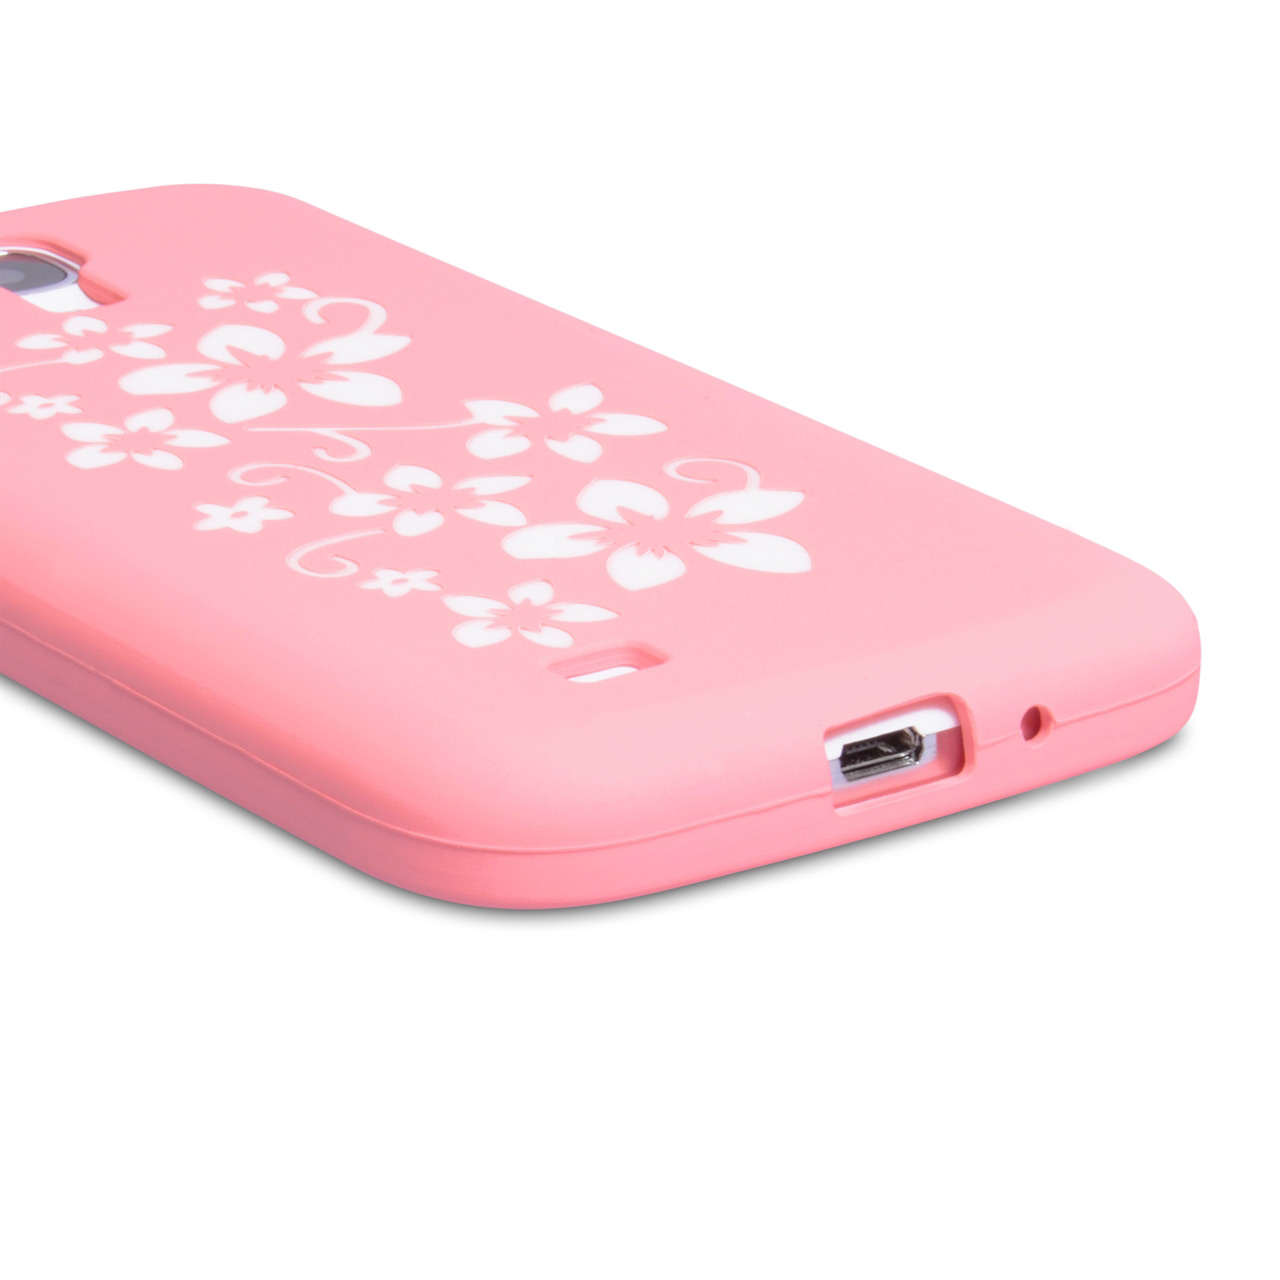 YouSave Accessories Samsung Galaxy S4 Floral Gel Case - Baby Pink